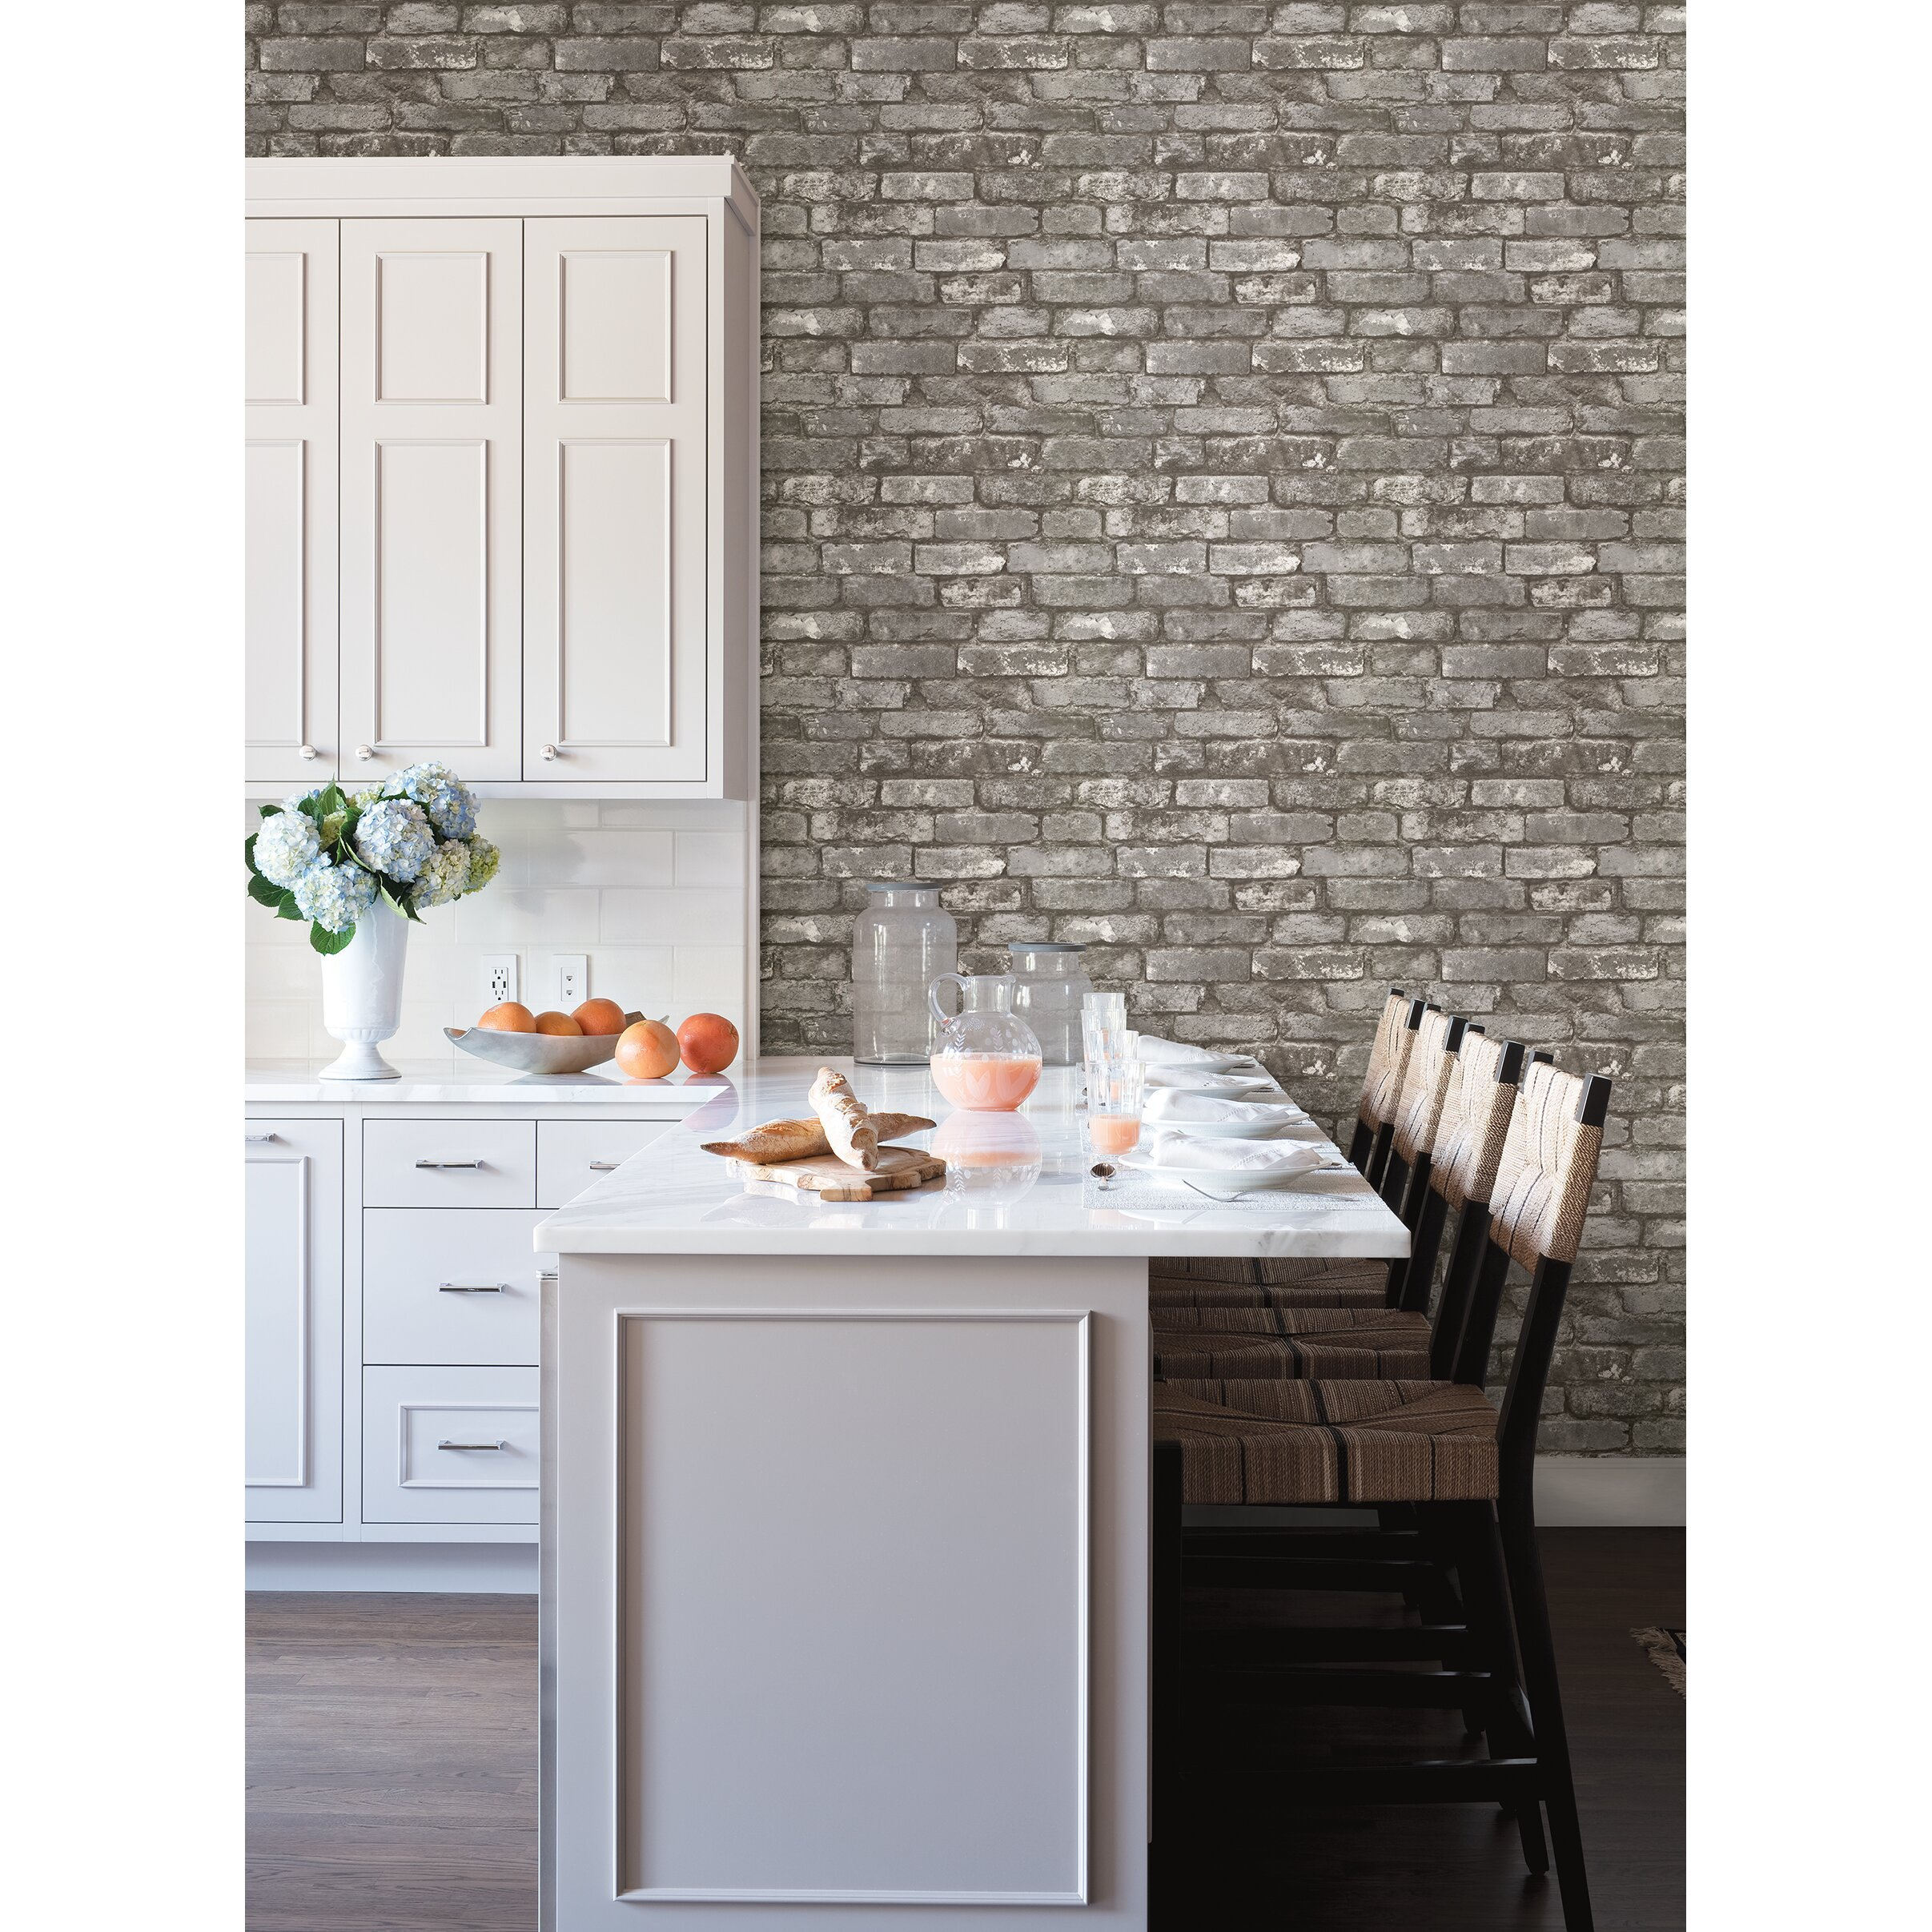 Brewster Home Fashions 33  x 20 5 quot  Chelsea Brick Wallpaper. Brewster Home Fashions 33  x 20 5  Chelsea Brick Wallpaper